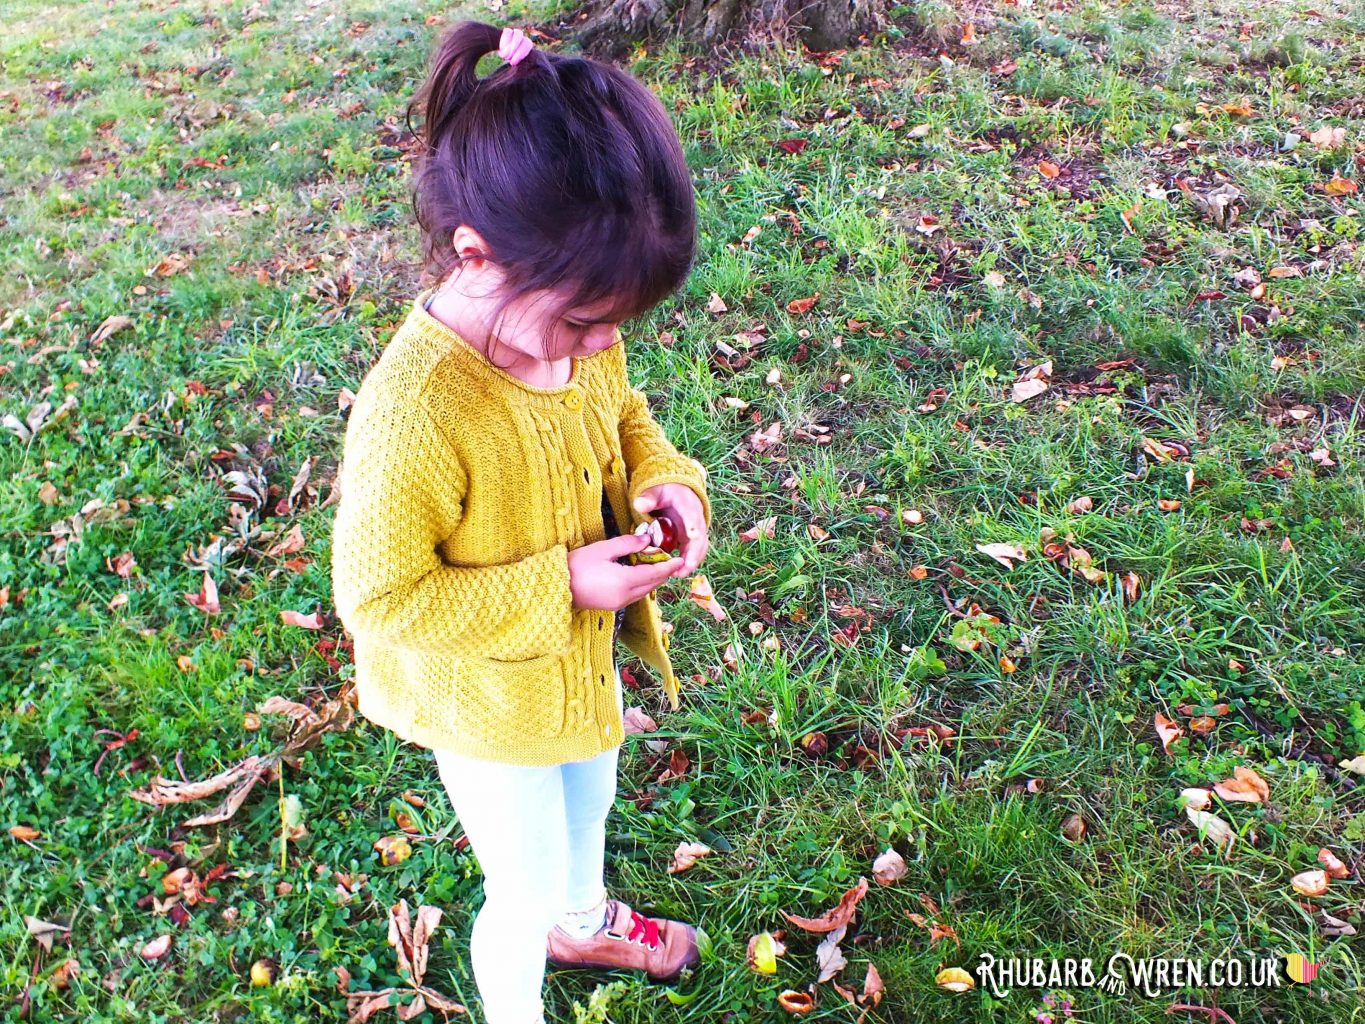 Foraging for conkers in the autumn